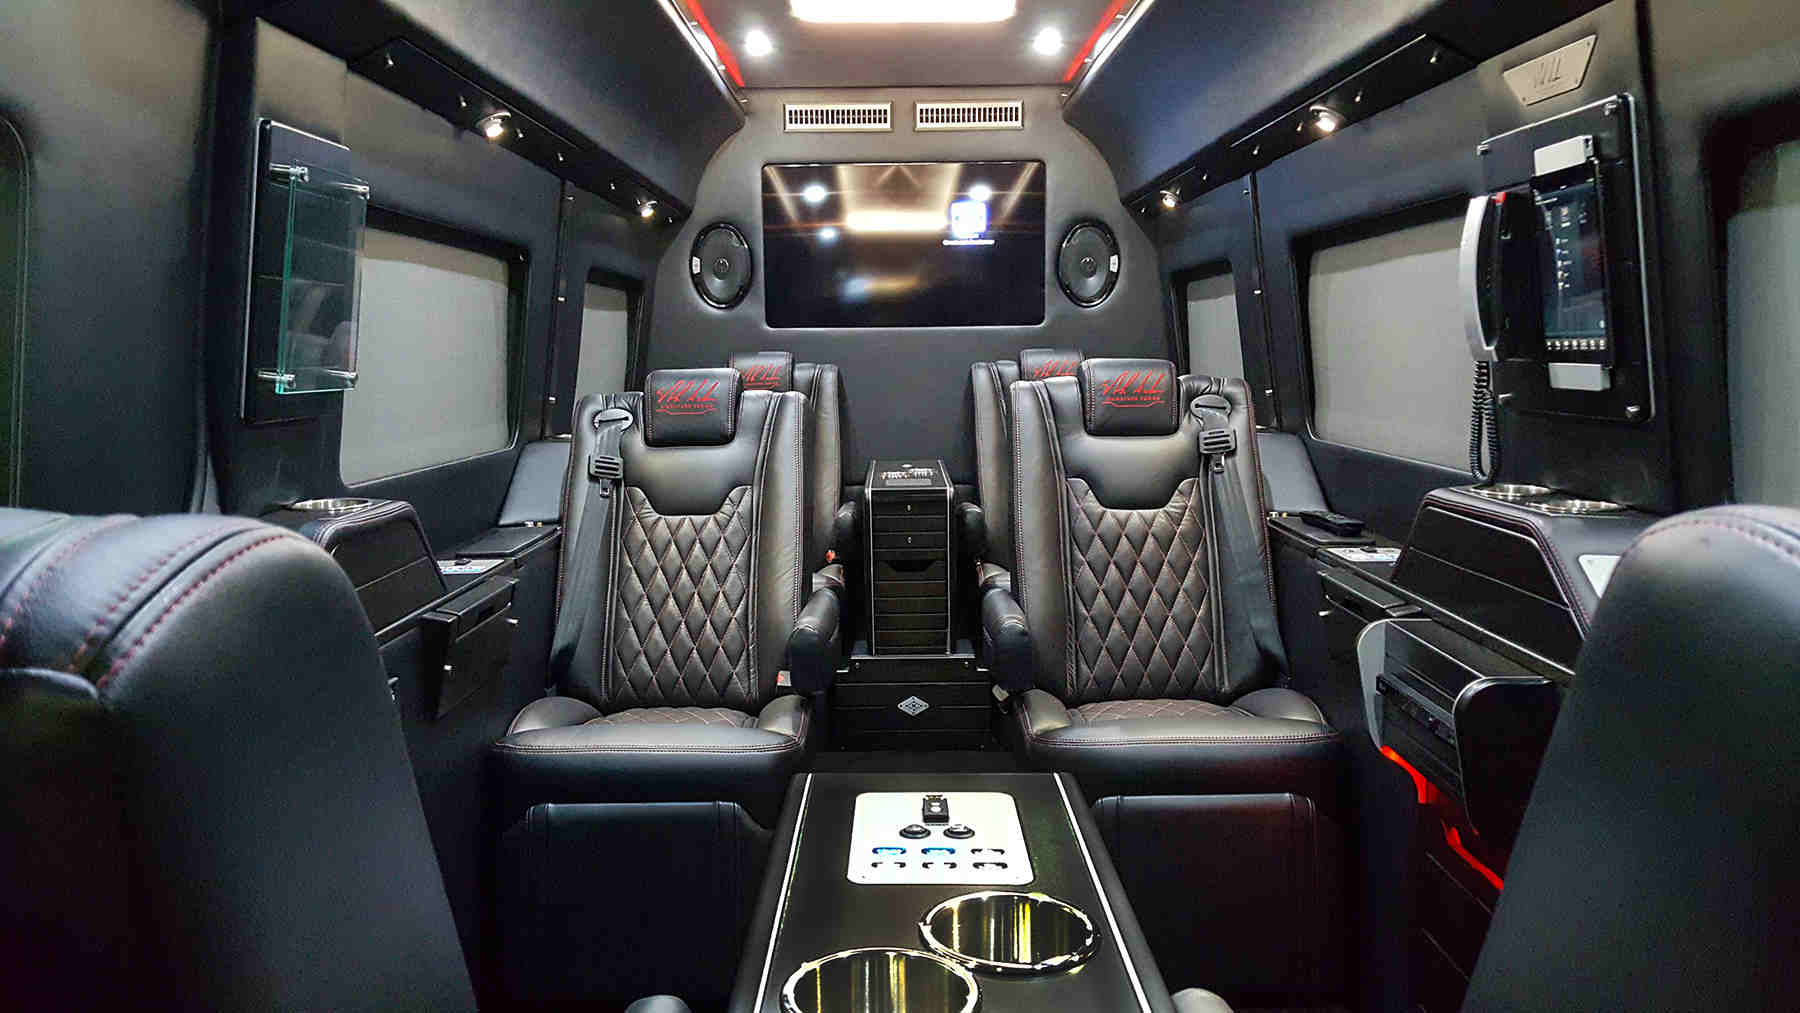 Nick saban pimps up mercedes benz sprinter interior for Luxury mercedes benz sprinter